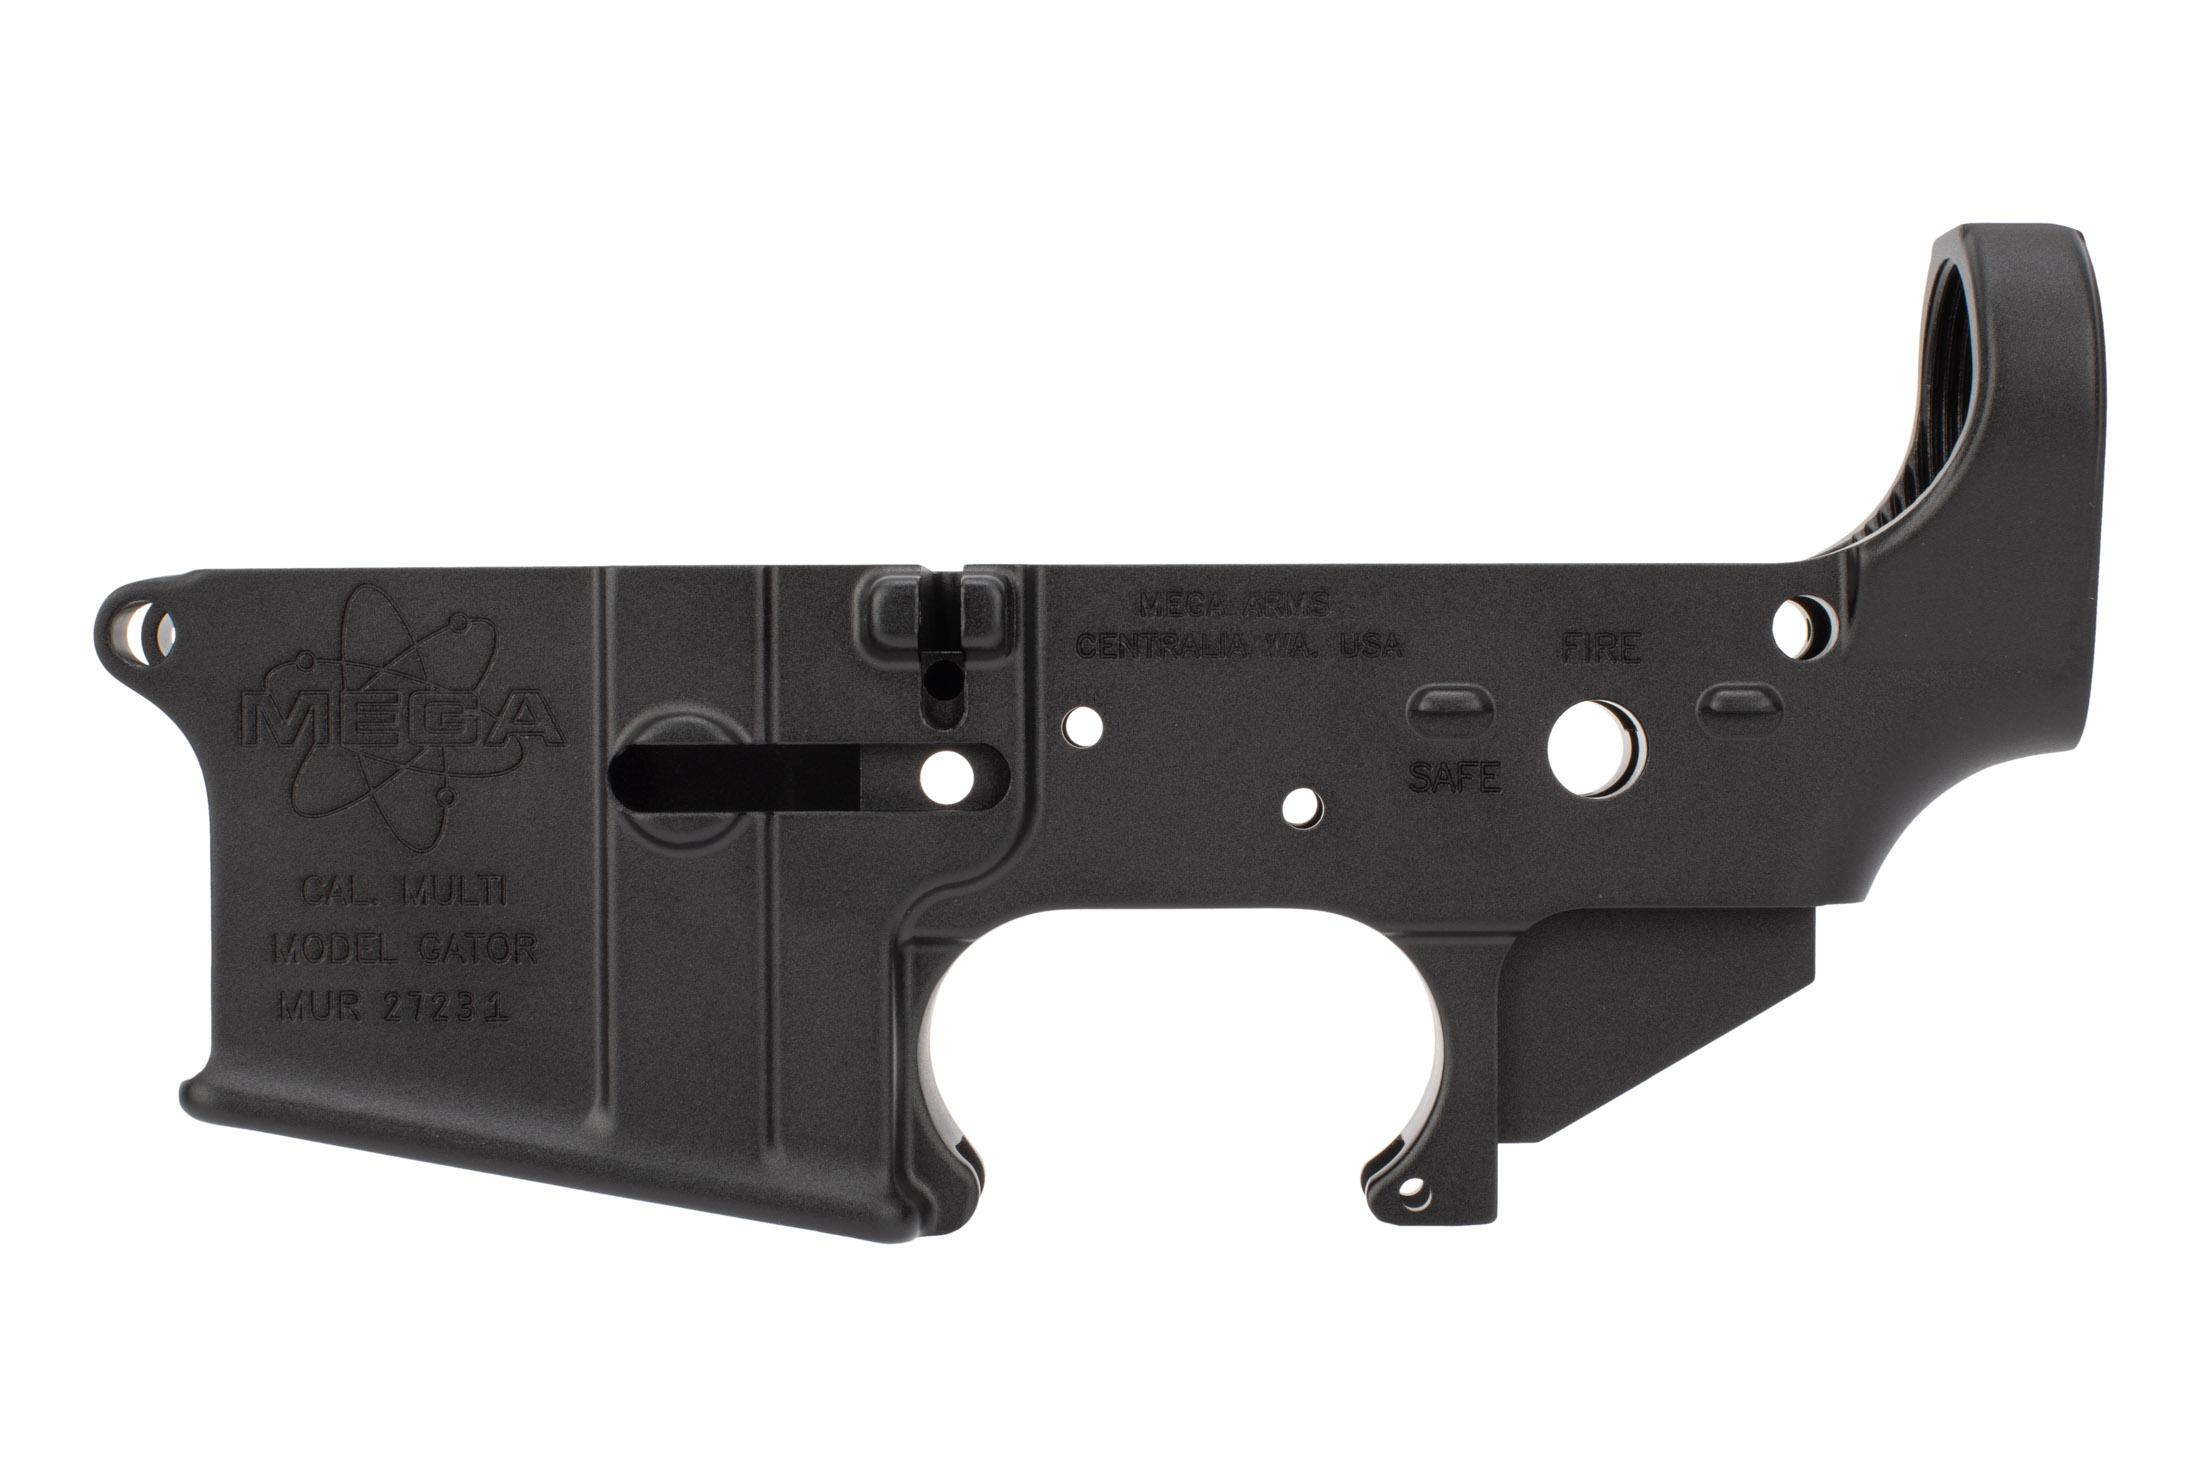 Mega Arms AR15 stripped lower receiver is machined to Mil-Spec dimensions